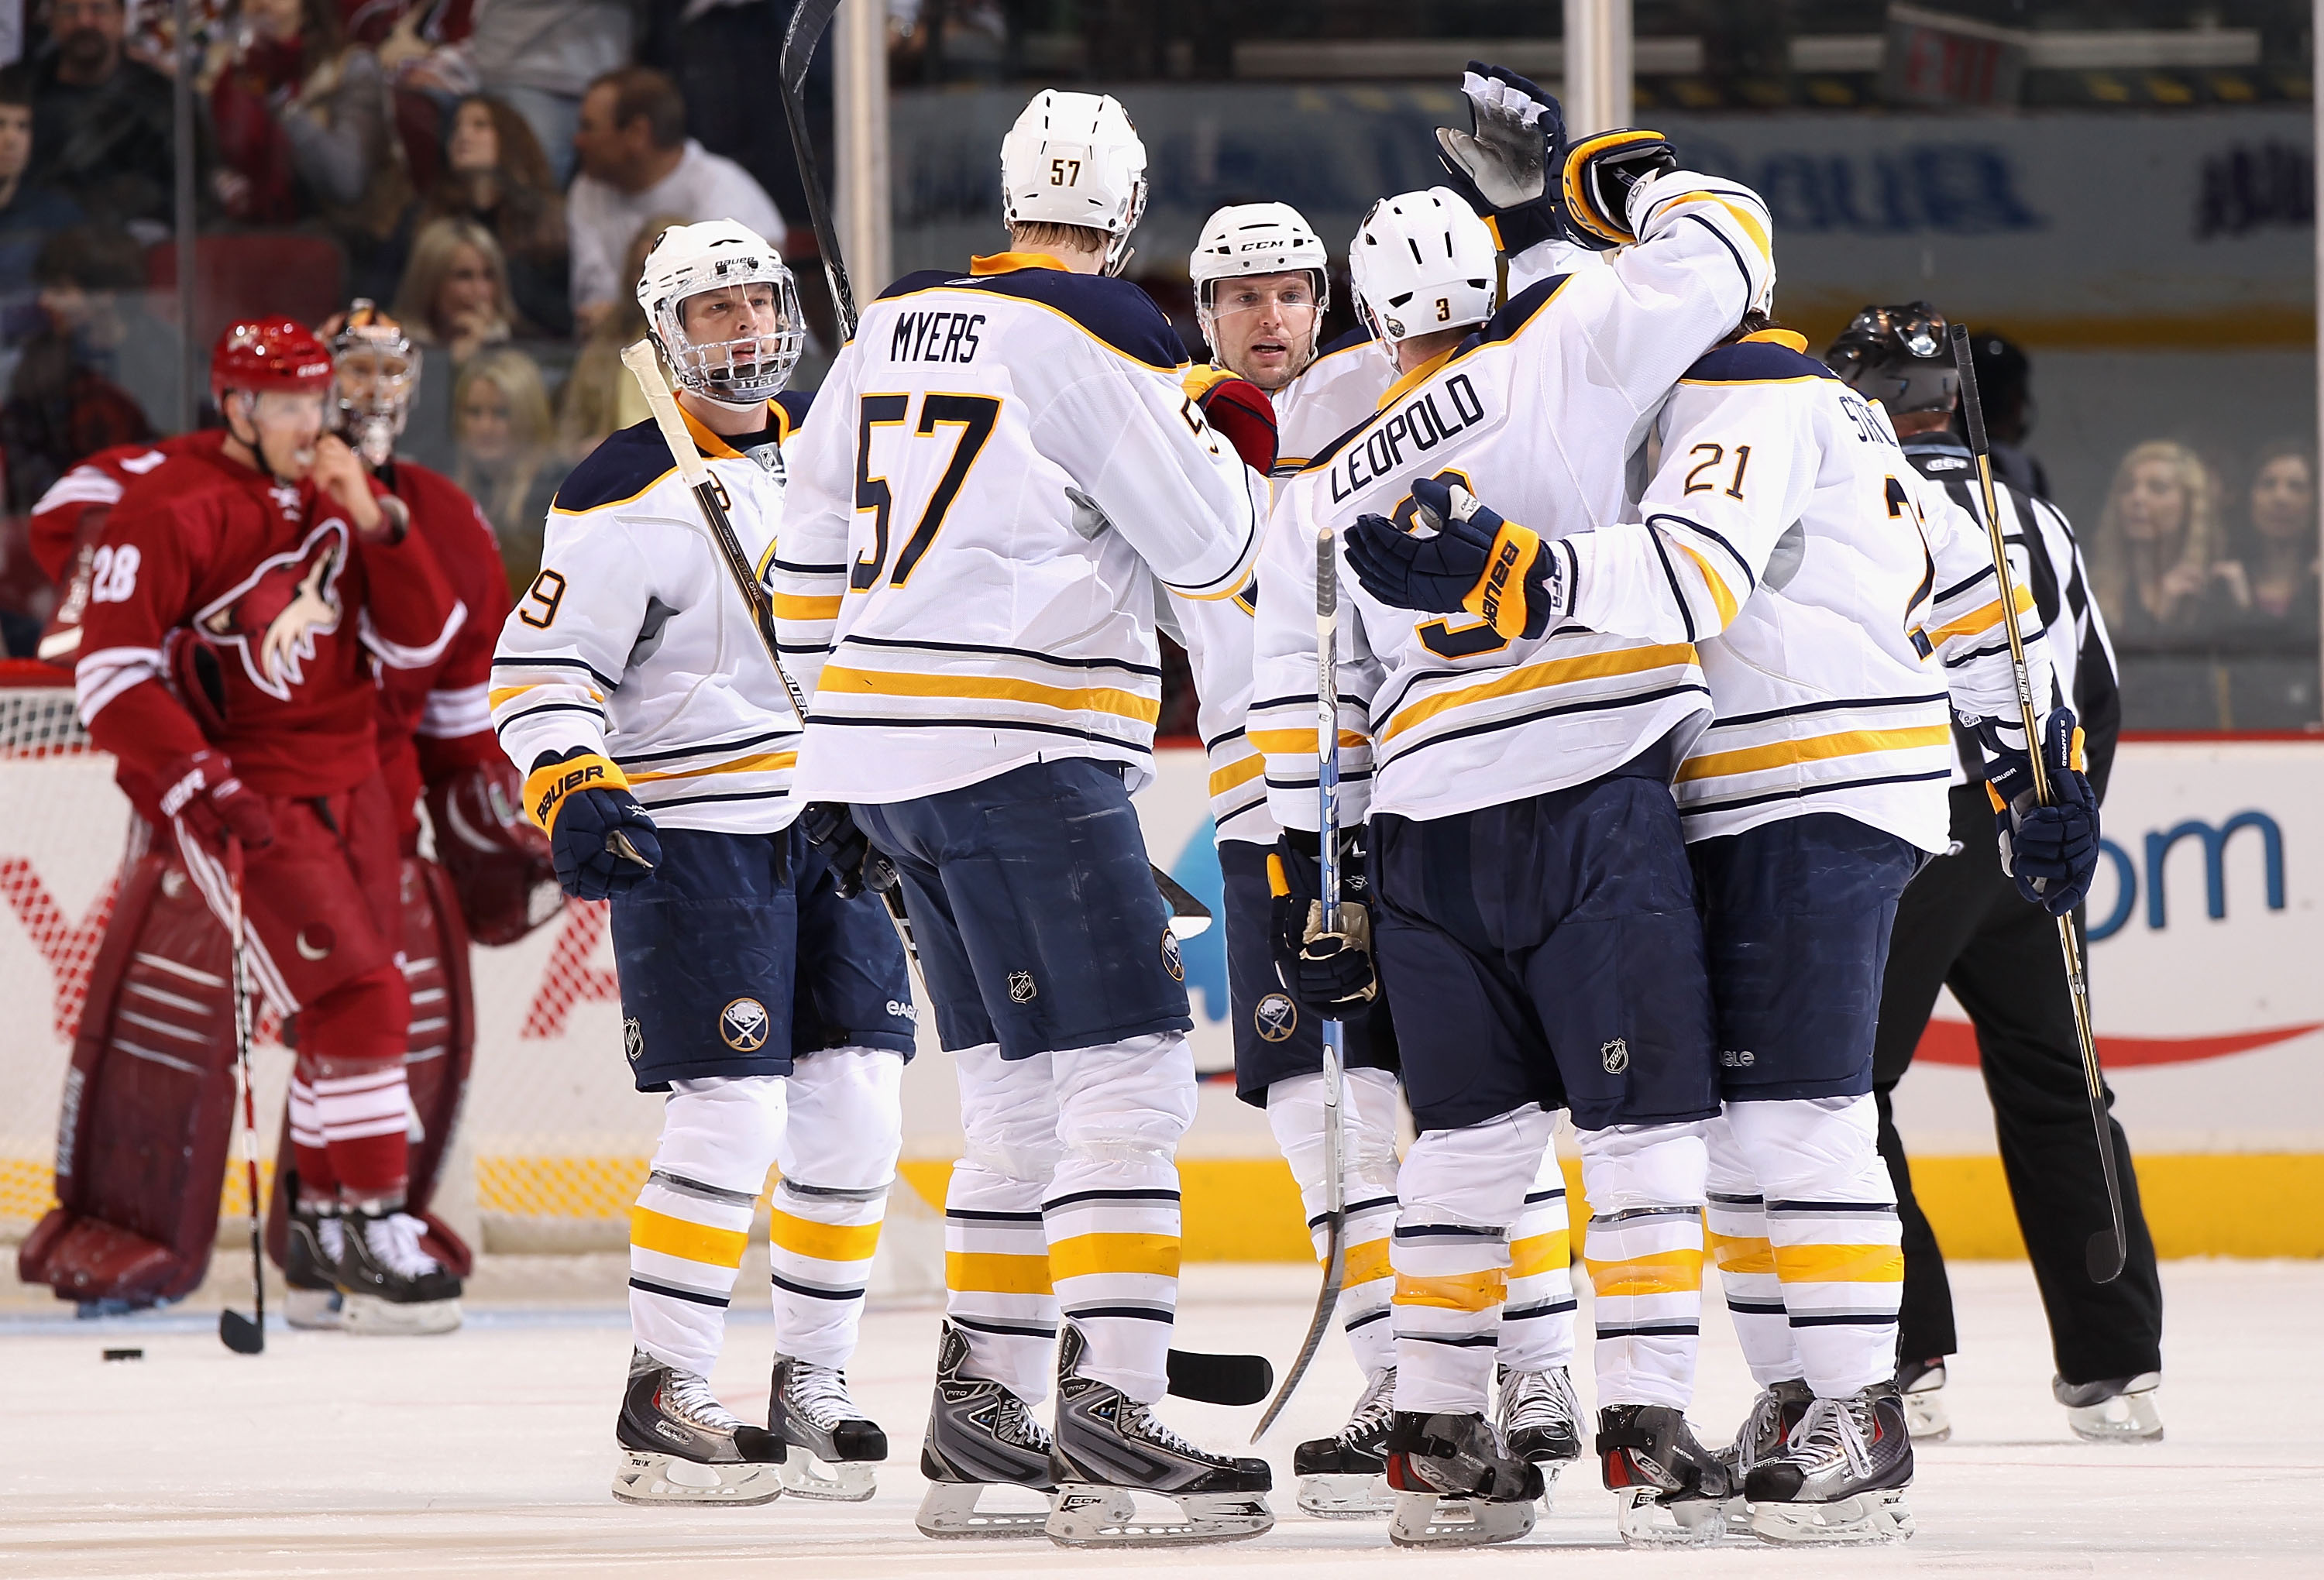 GLENDALE, AZ - JANUARY 08:  Jordan Leopold #3 of the Buffalo Sabres is congratulated by teammates after scoring a second period goal against goaltender Jason LaBarbera #1 of the Phoenix Coyotes during the NHL game at Jobing.com Arena on January 8, 2011 in